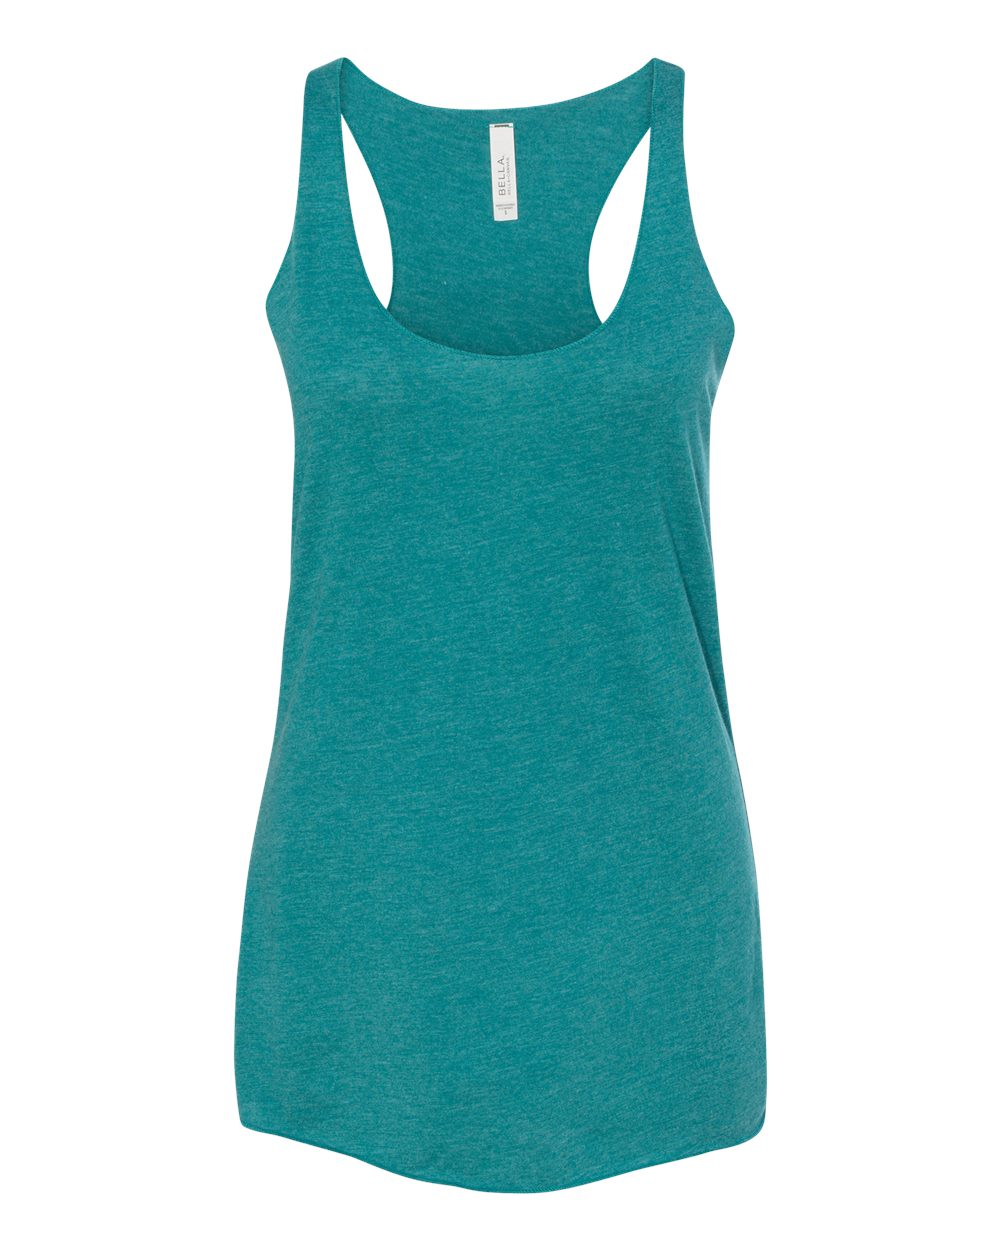 Bella + Canvas - Ladies' Triblend Racerback Tank - Silkscreen - 8430